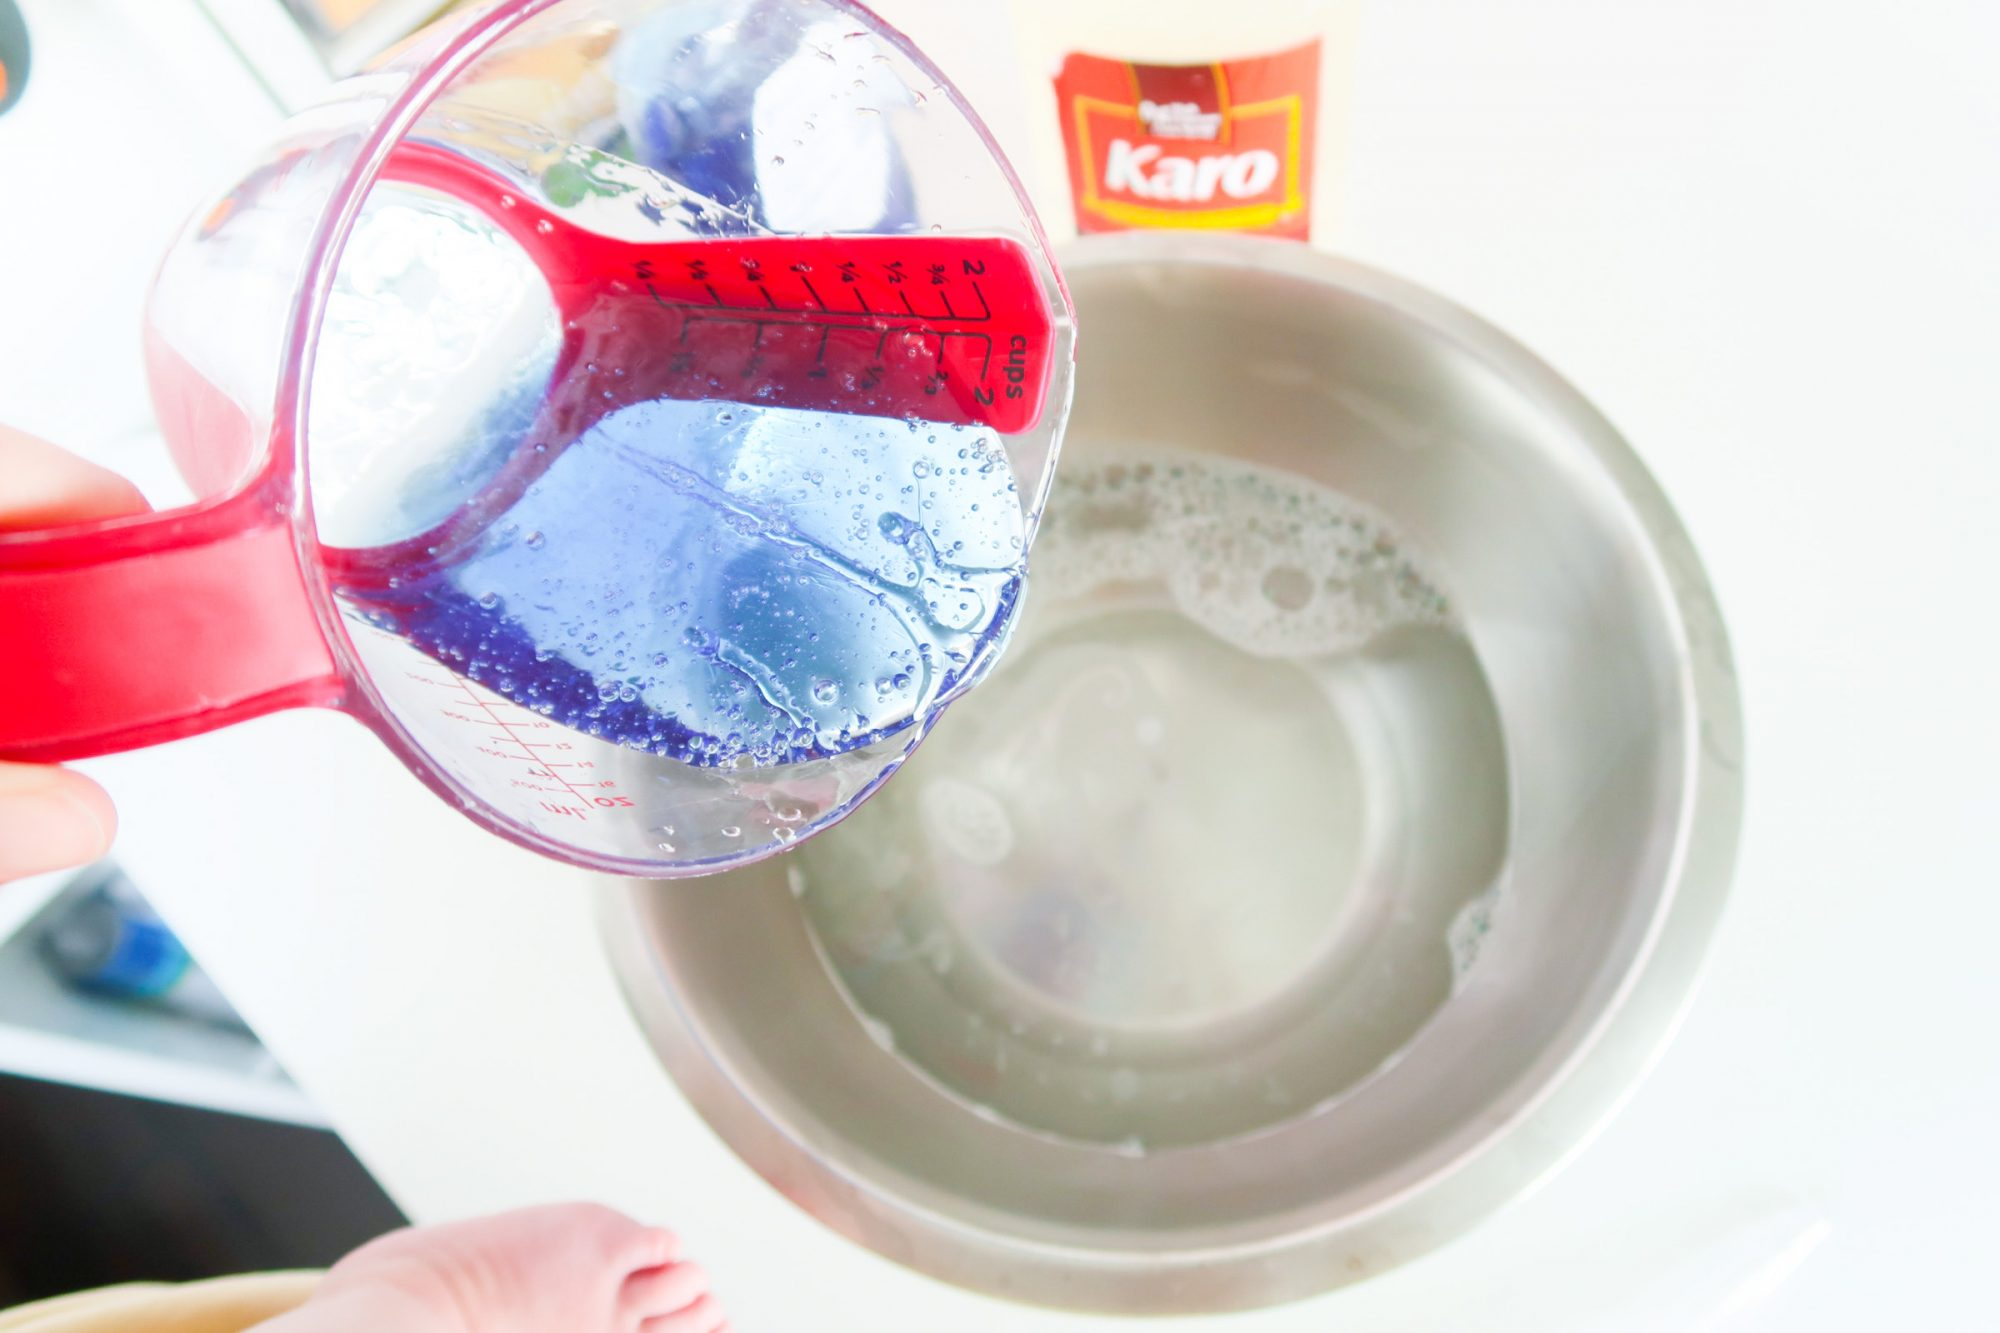 pouring Dawn dish soap into mixing bowl